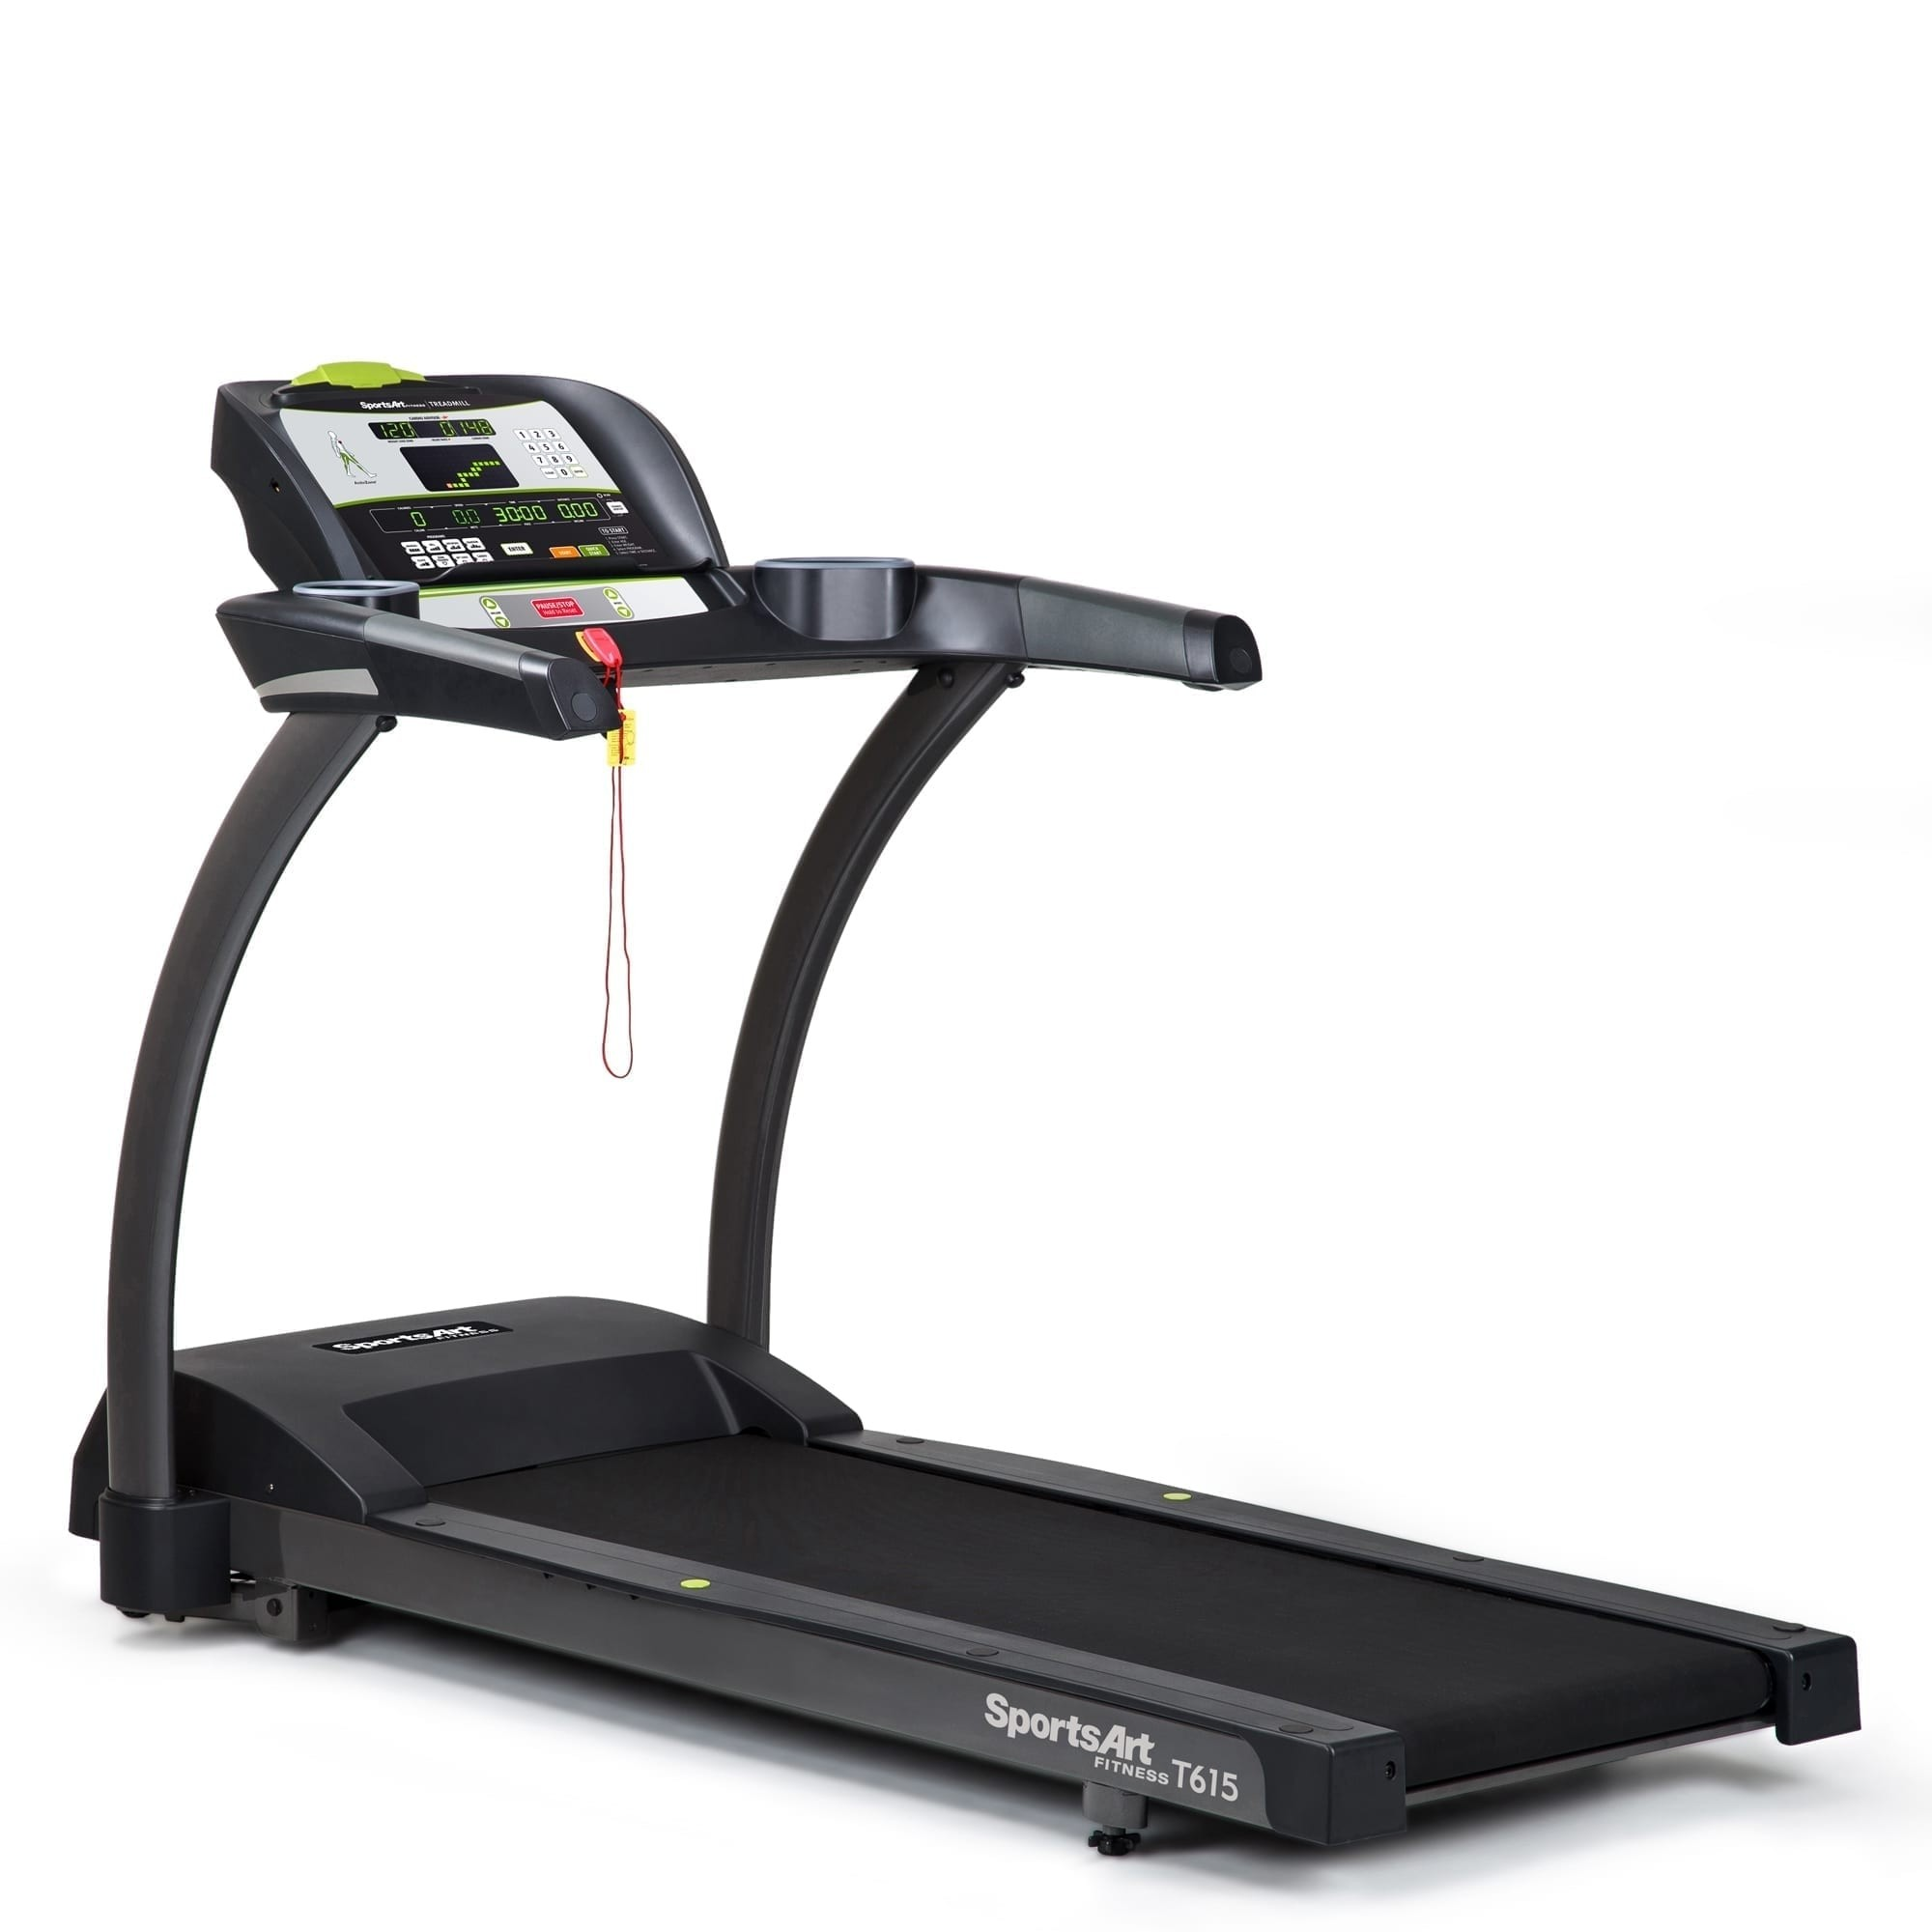 Sports Art T615 FOUNDATION TREADMILL WITH ECO-GLIDE